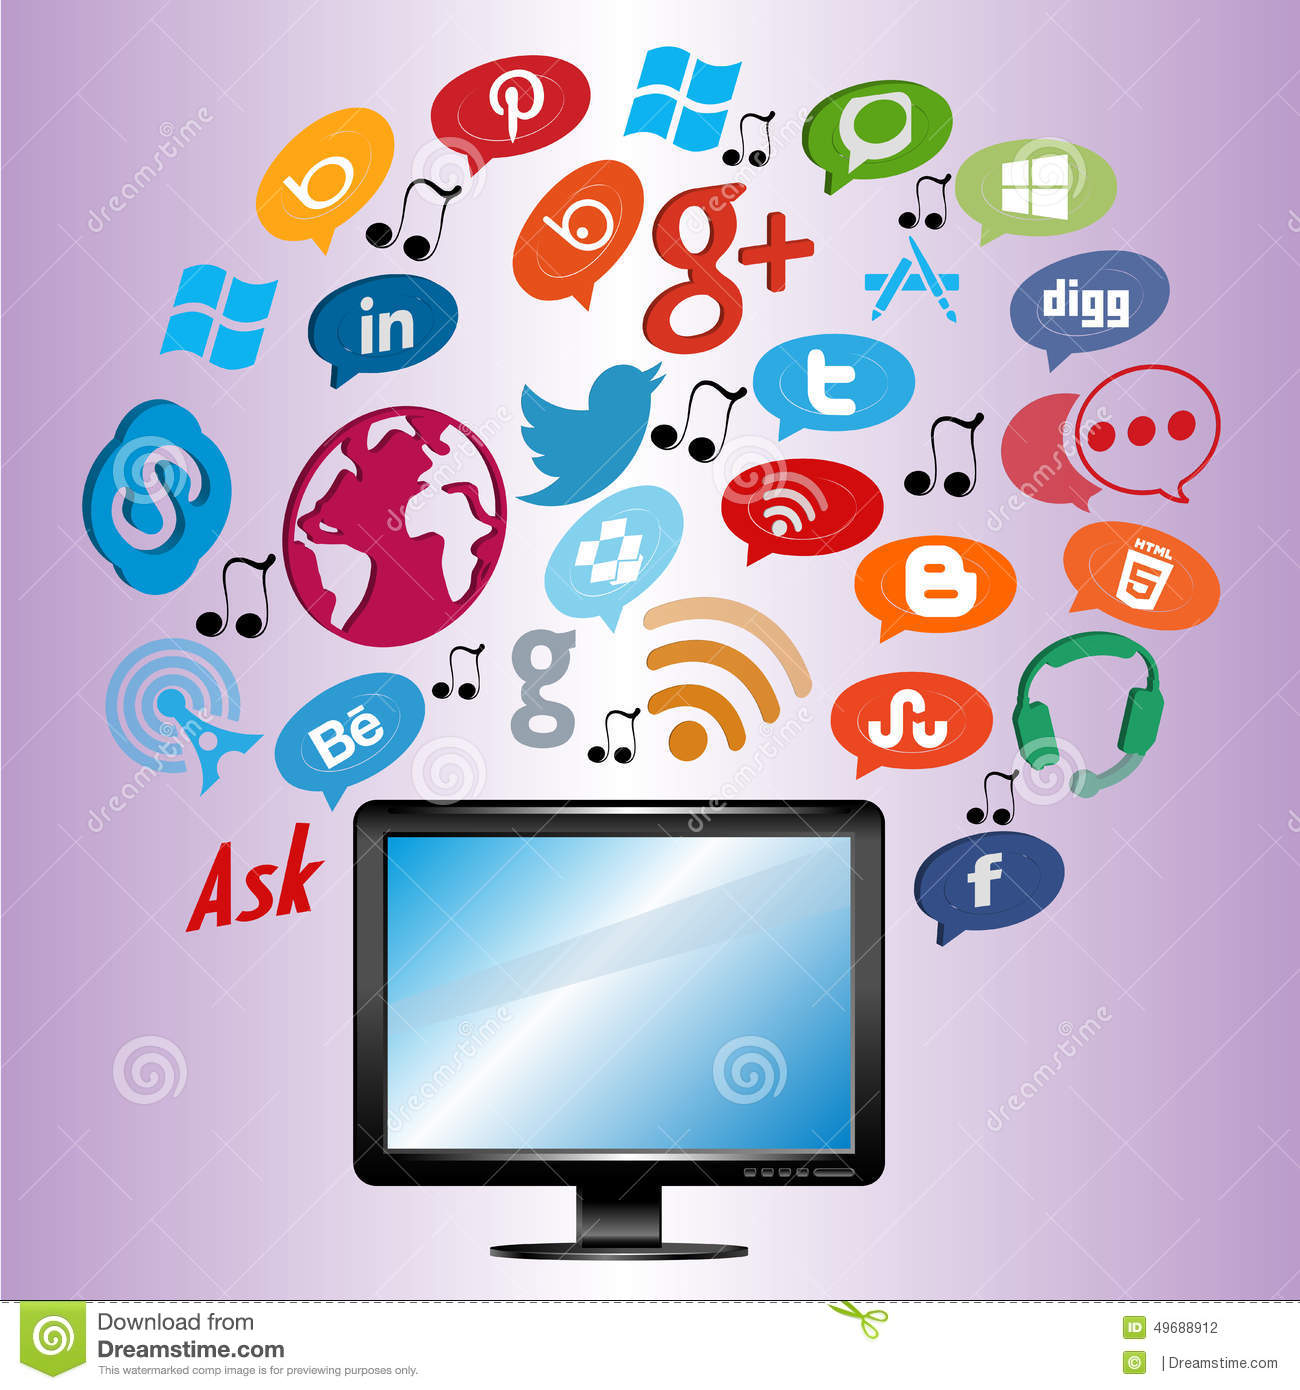 How To Design A Social Networking Website Free